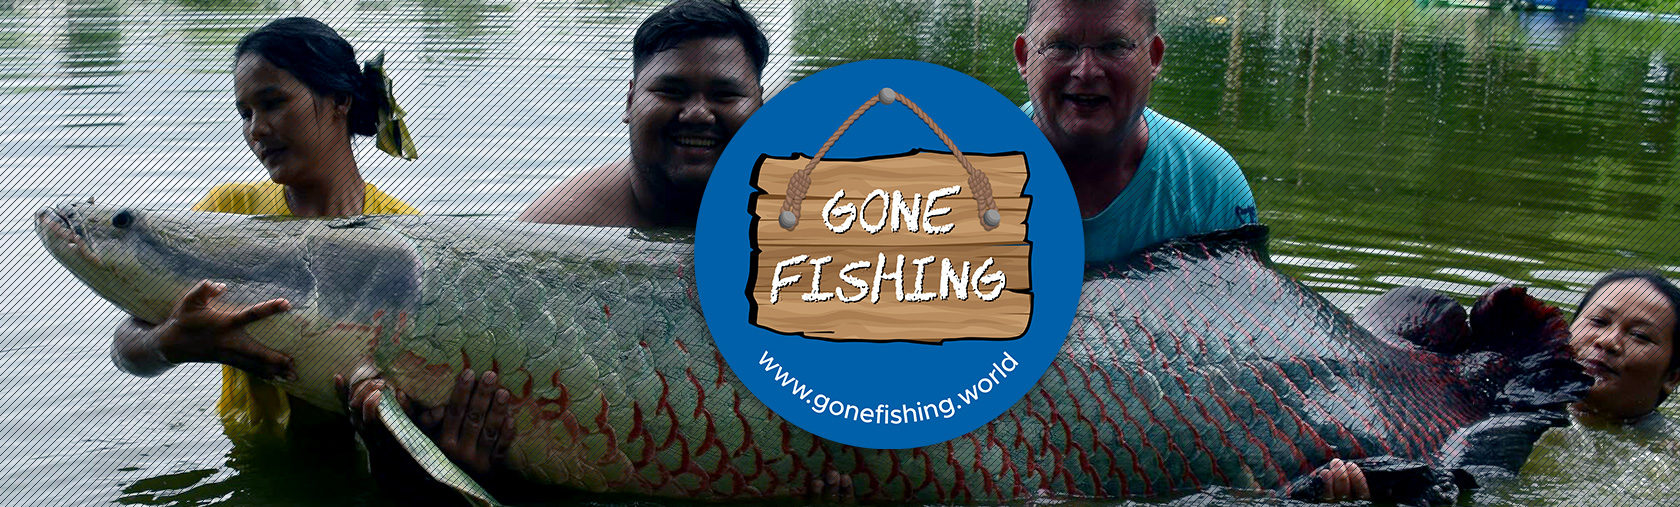 gone-fishing-world-home-featured